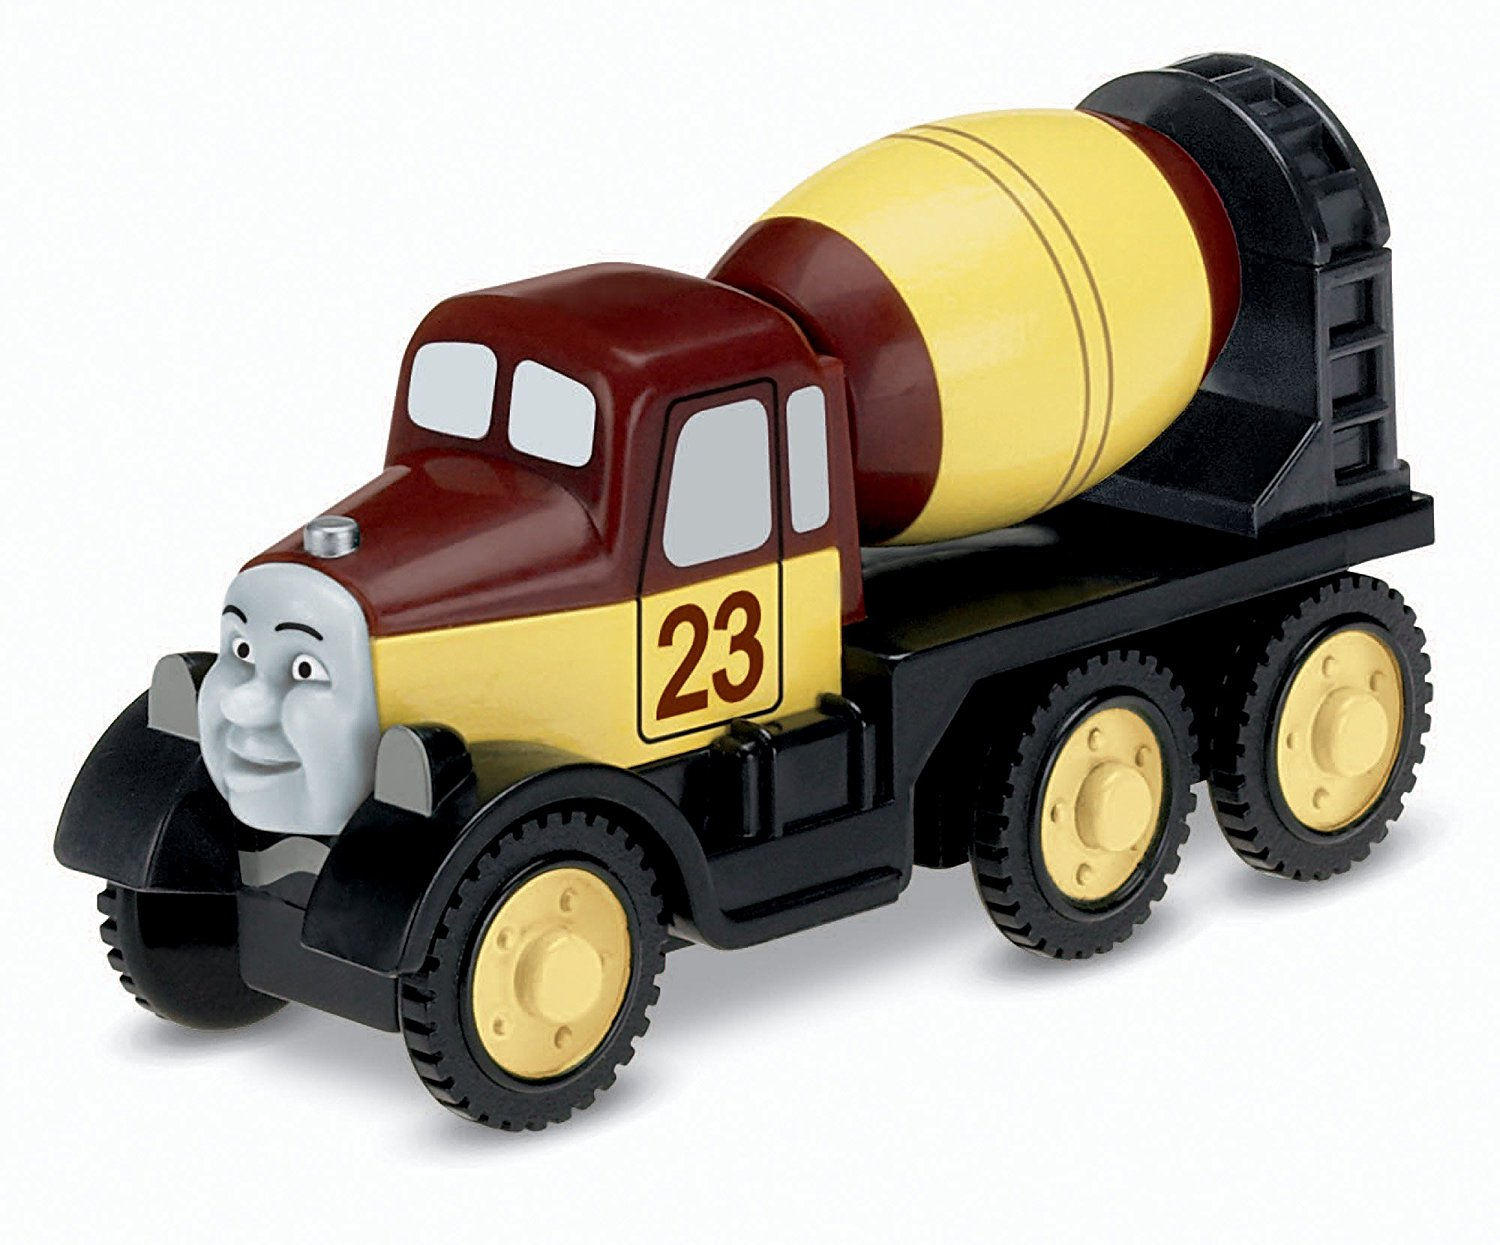 Fisher Price Thomas the Train Wooden Railway Patrick Y7469